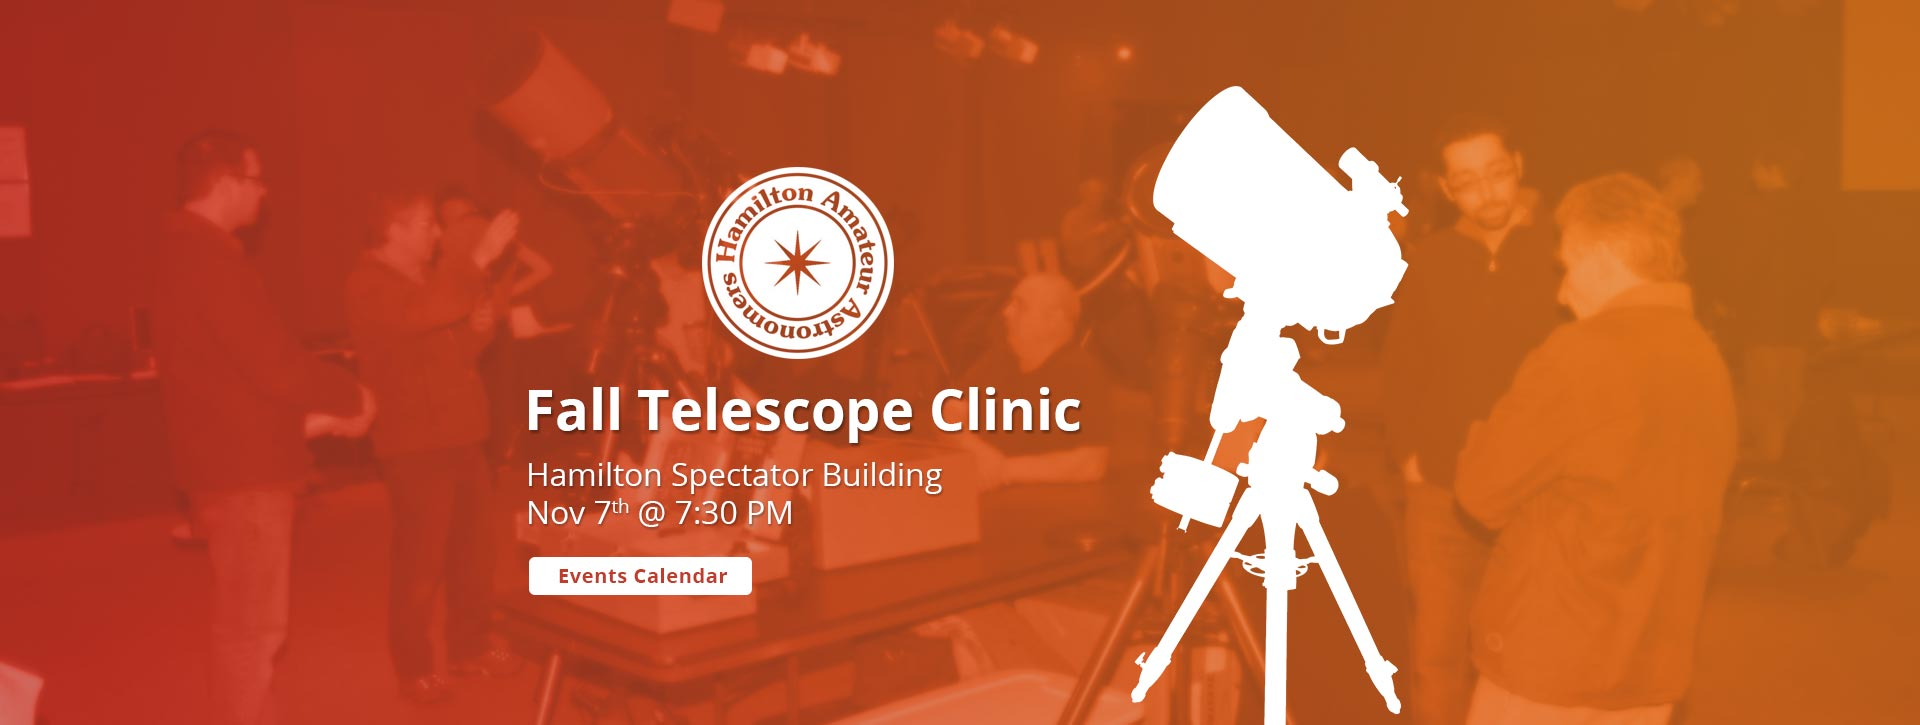 Fall Telescope Clinic